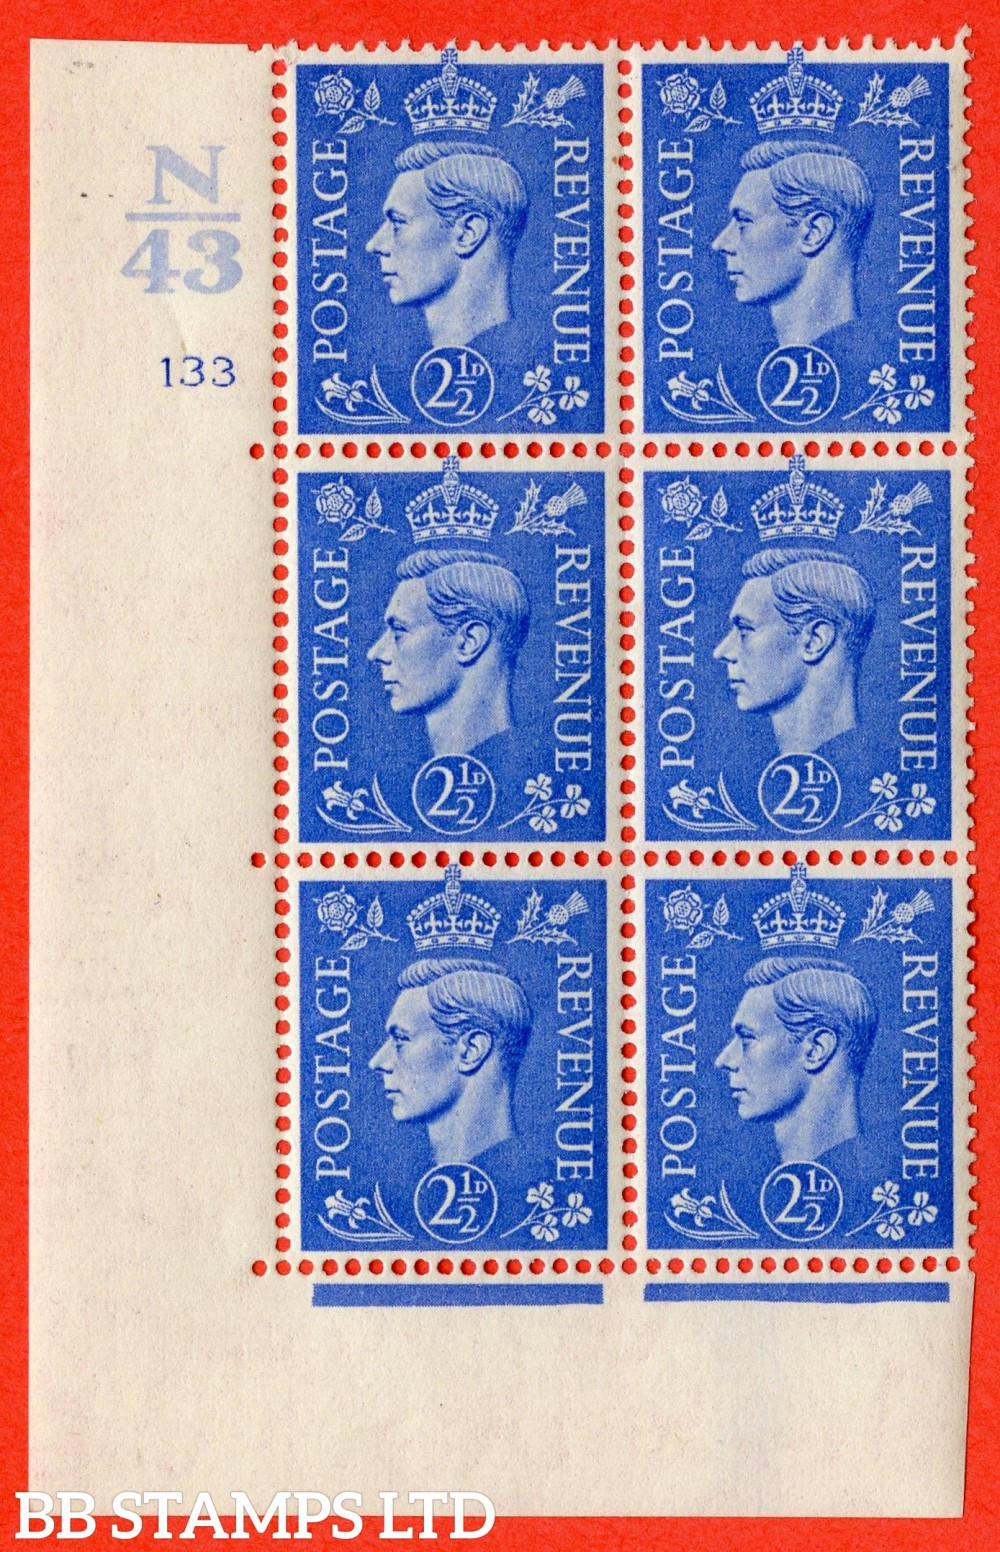 "SG. 489. Q14. 2½d Light ultramarine. A fine mounted mint "" Control N43 cylinder 133 no dot "" control block of 6 with perf type 5 E/I."